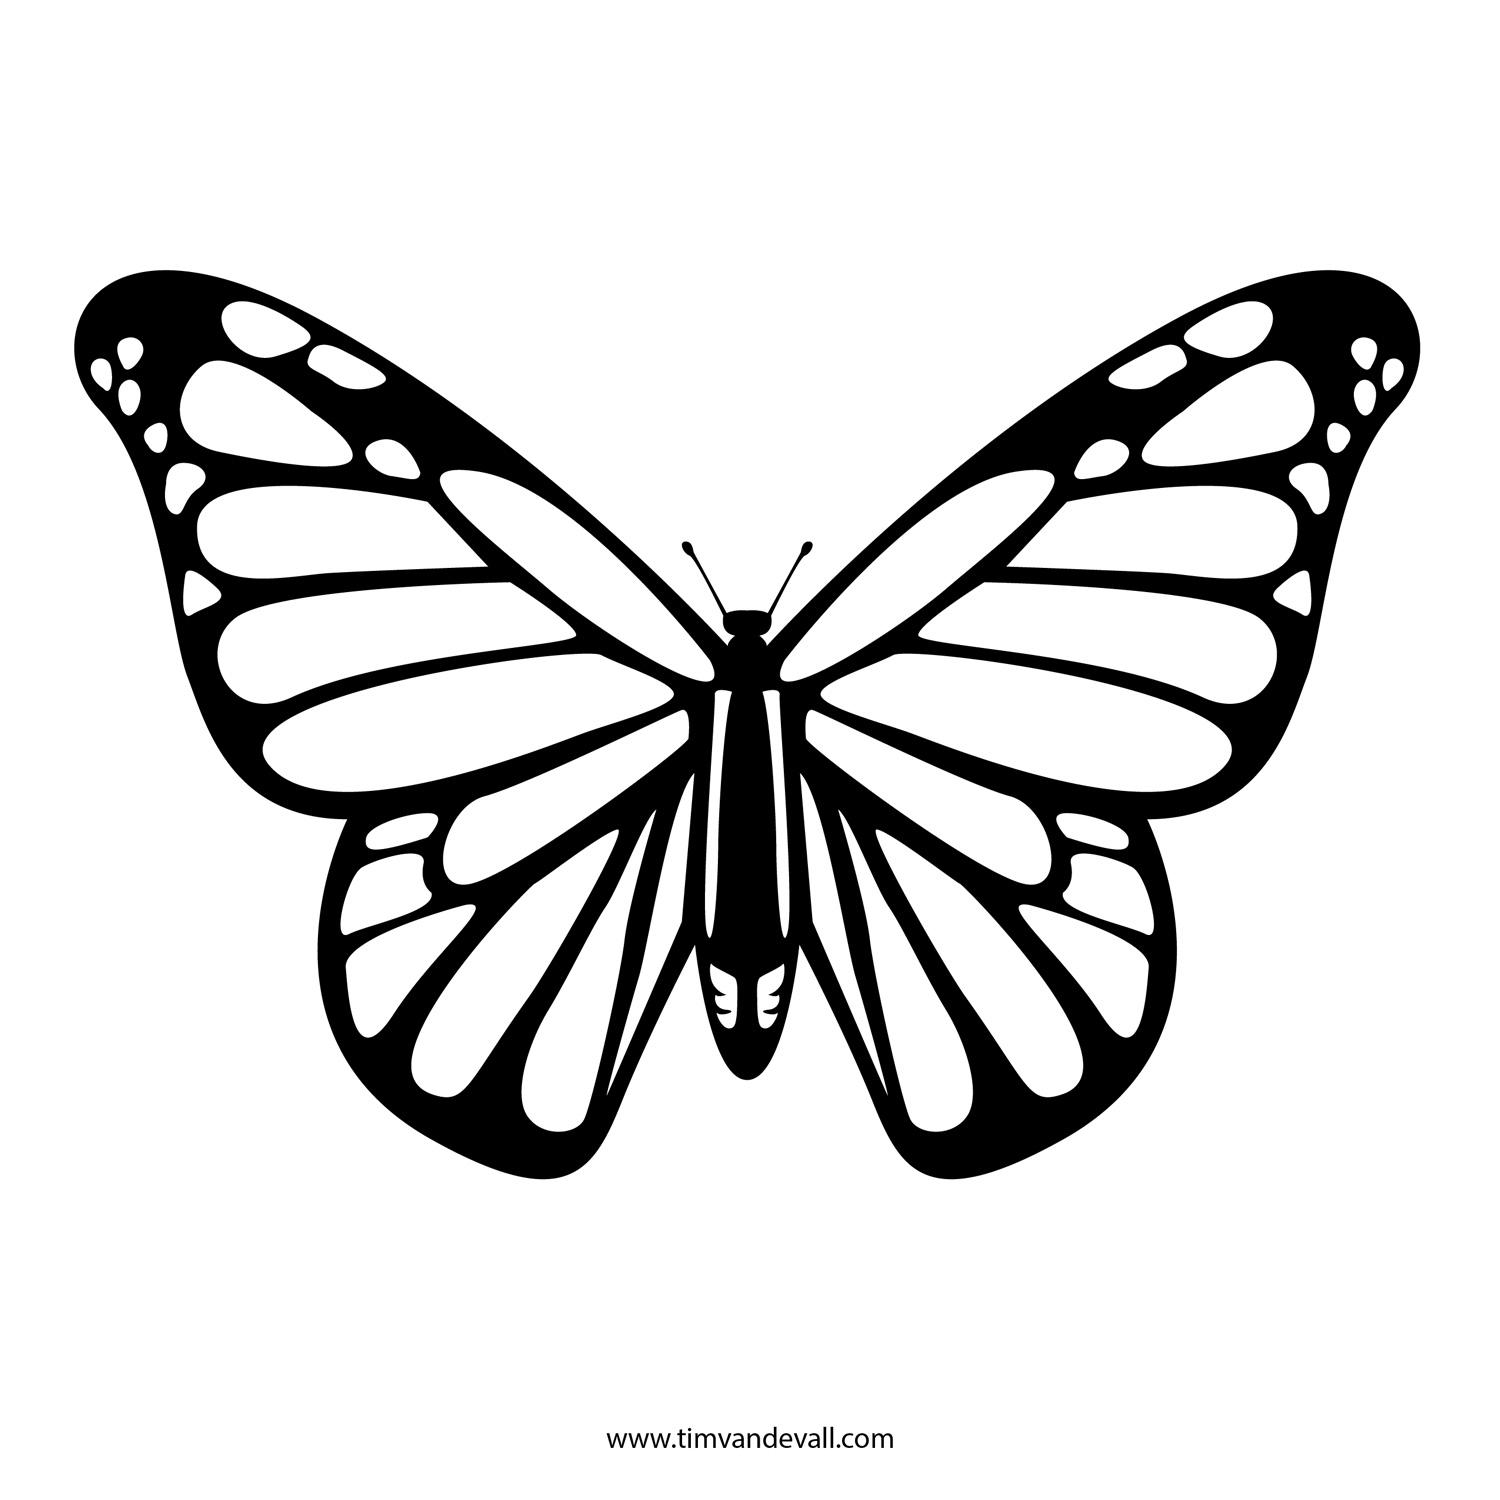 butterfly coloring template butterfly outline template clipartsco butterfly coloring template